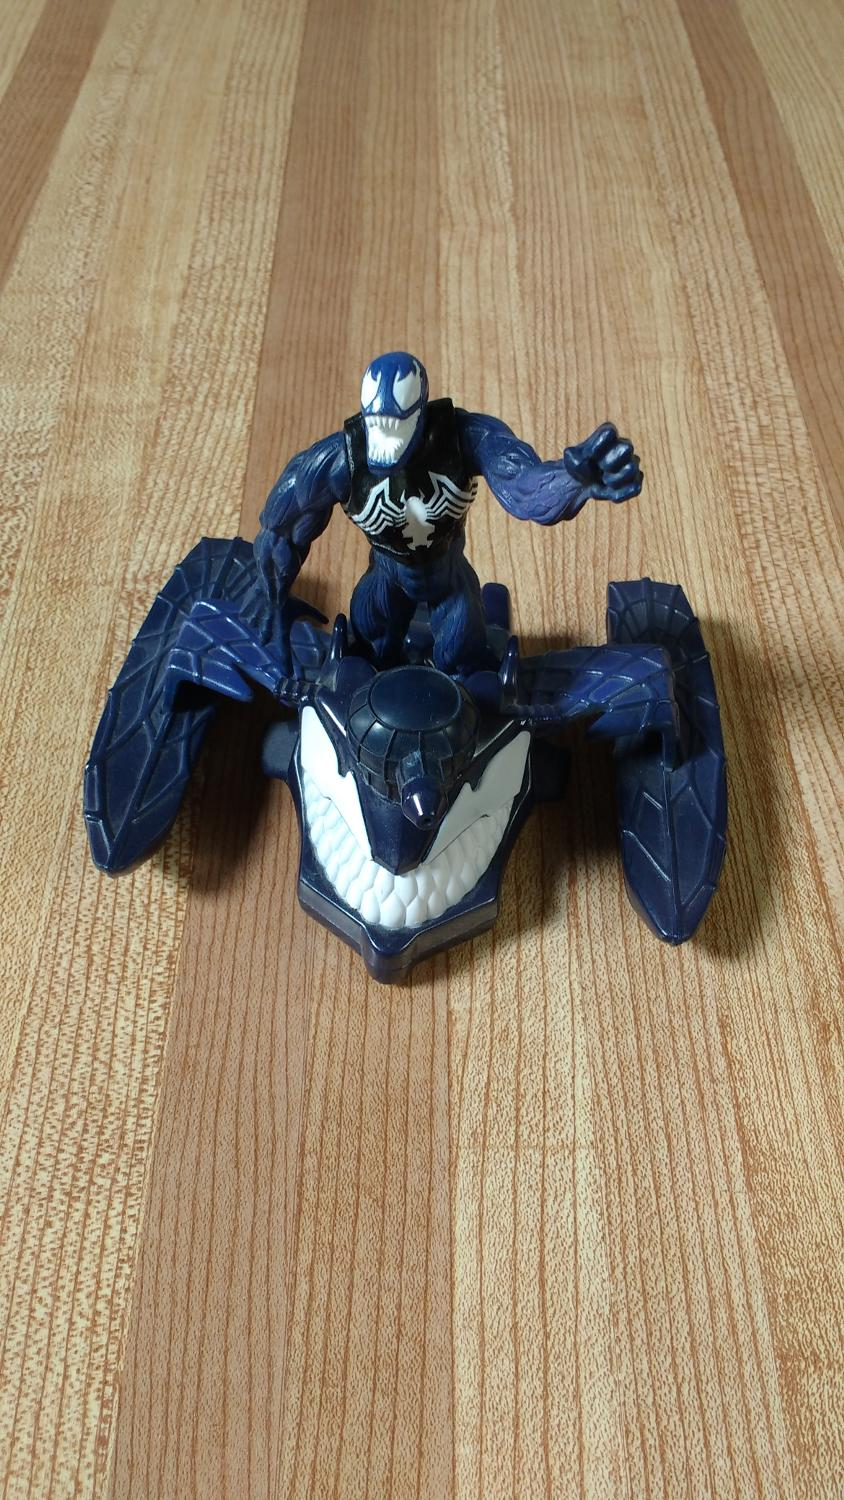 Best Spiderman Venom Water Spitter By Hasbro. Euc for sale in ...